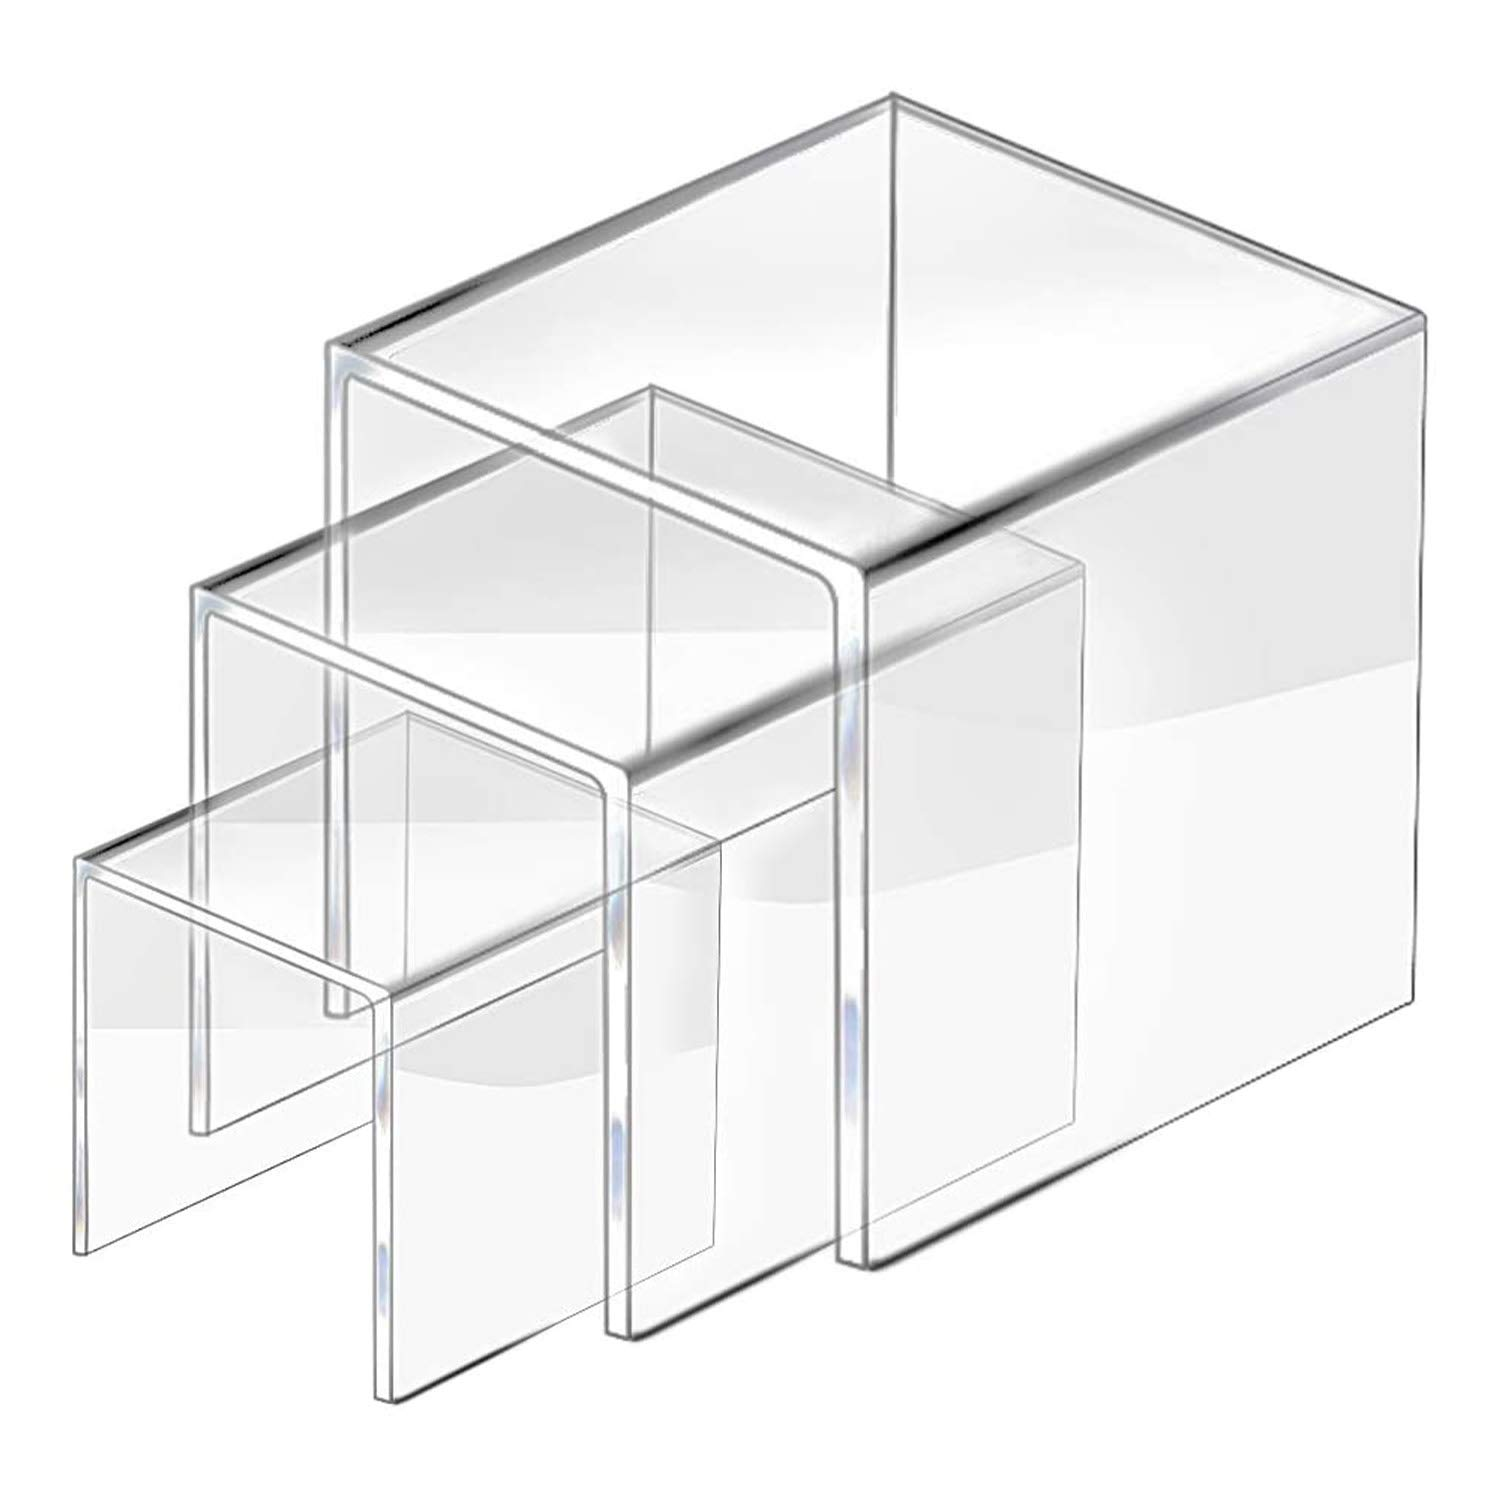 2 Set Acrylic Display Risers Display for Funko POP Figures, Jewelry Display Riser Shelf Showcase Fixtures, Clear Cake Stands for Candy Dessert Table Decorations-3